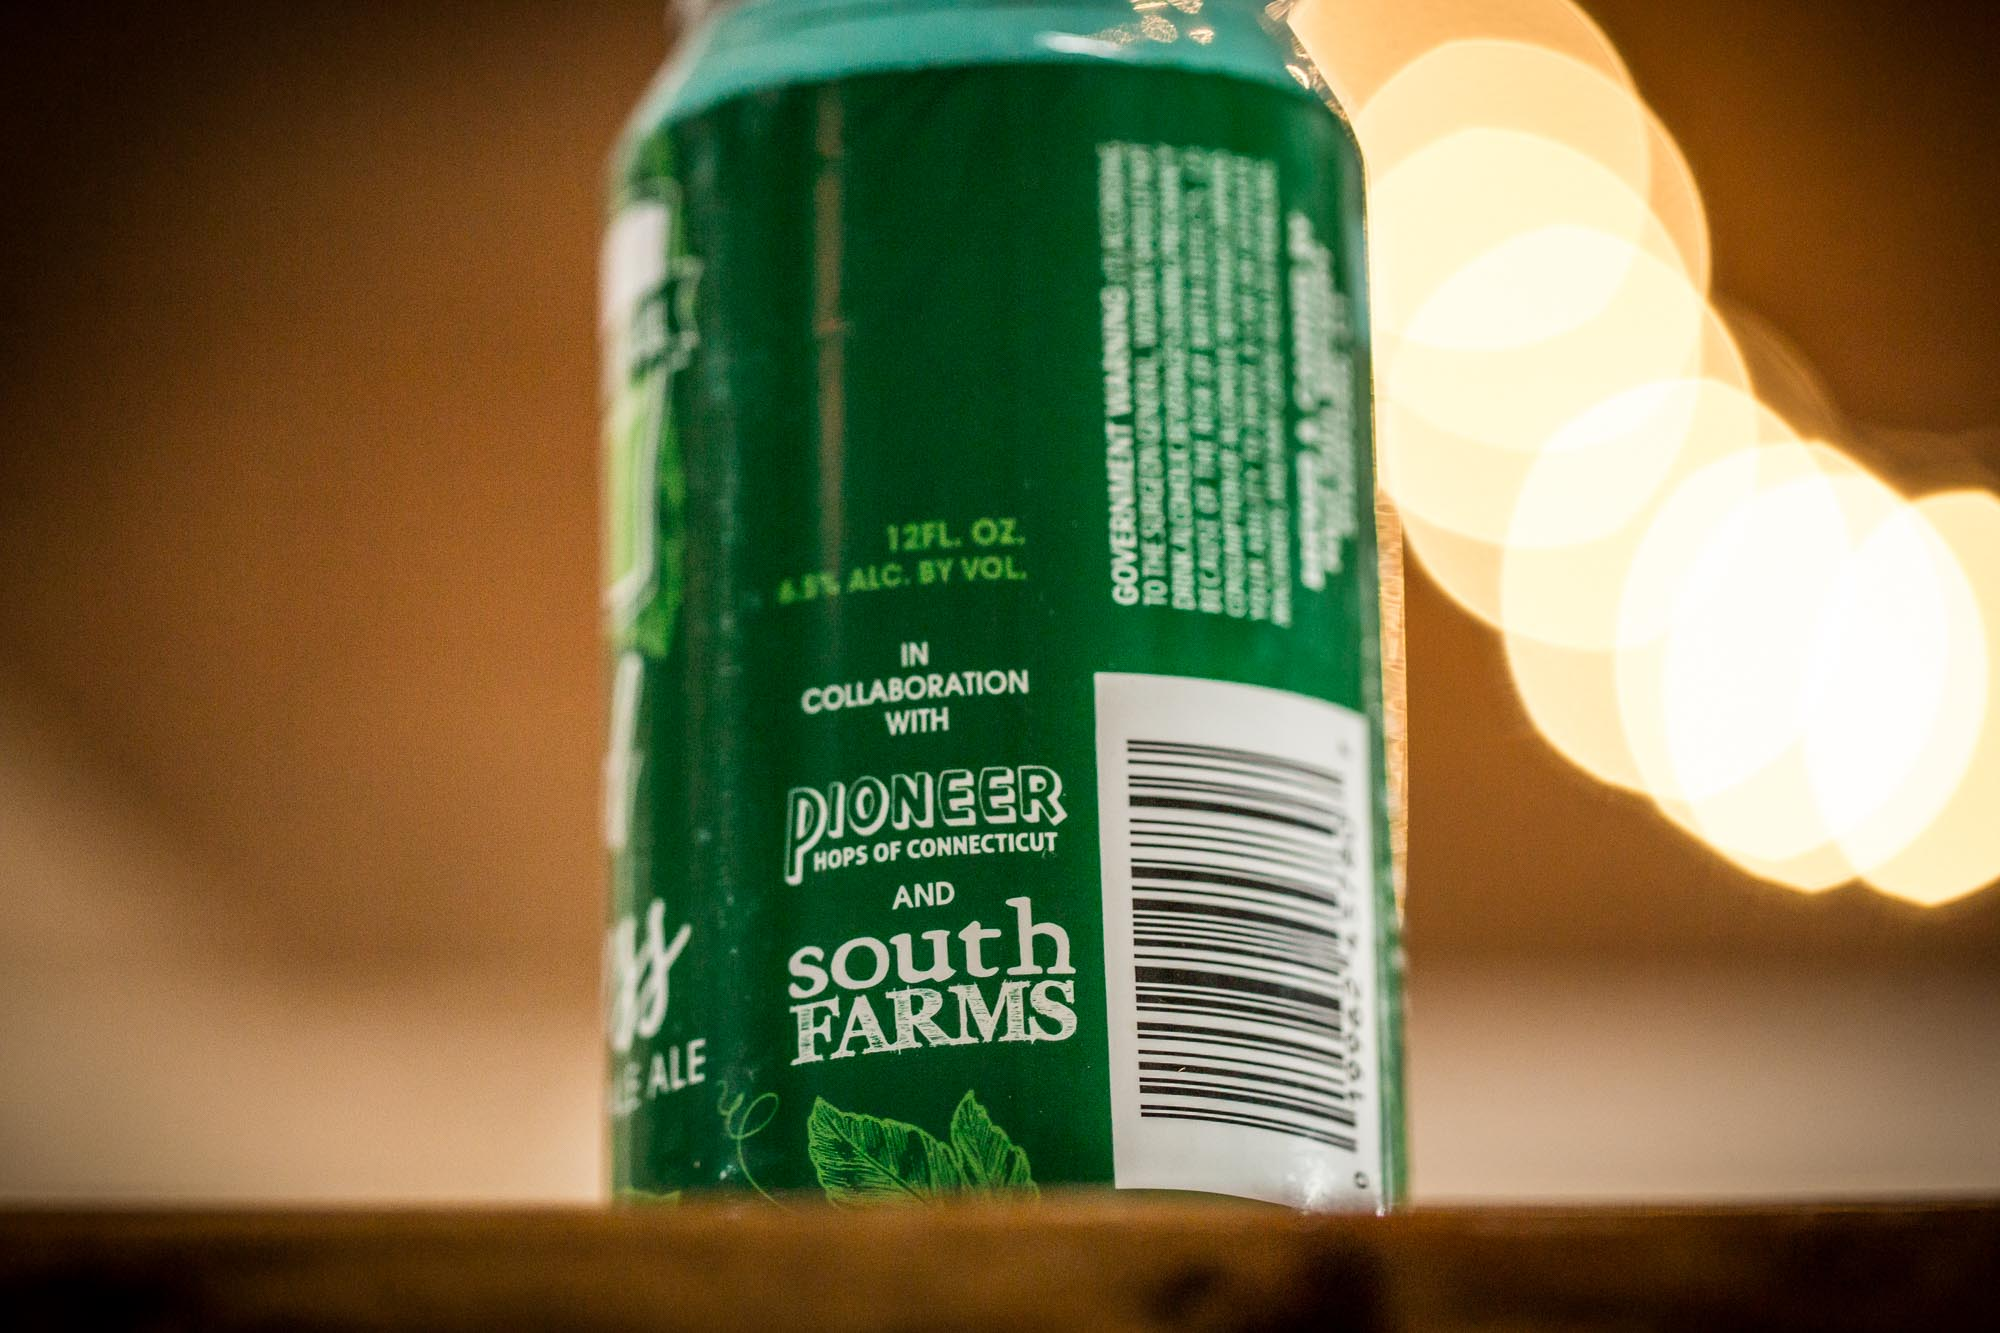 beer can with South Farms logo and Pioneer Hops